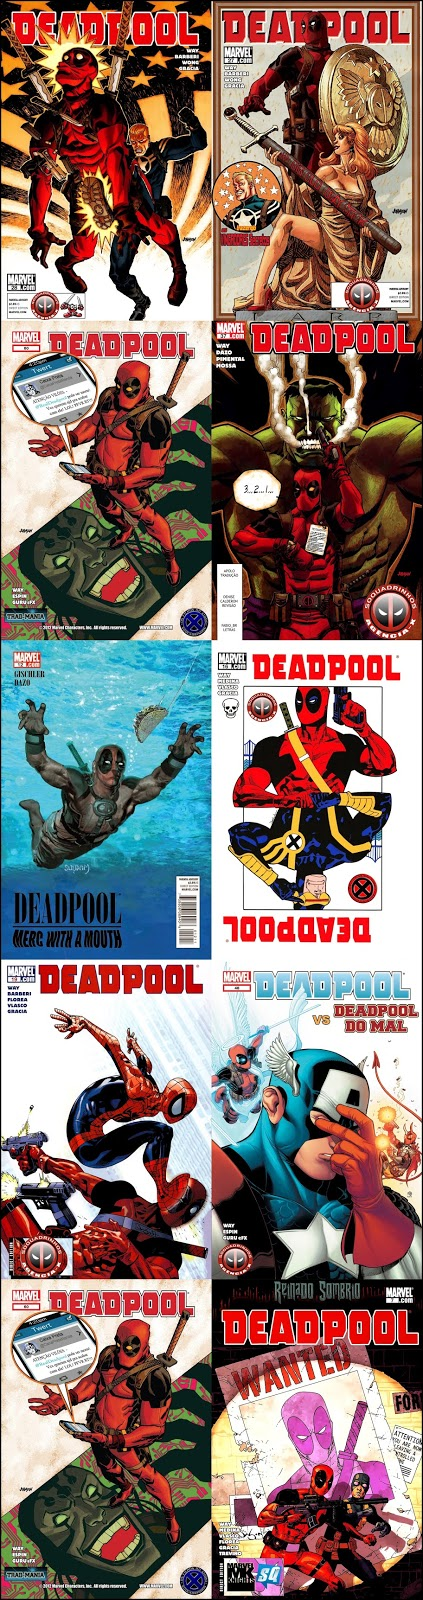 PERSPECTIVA DE QUEM EMPRESTO #02: Deadpool Vol. 4